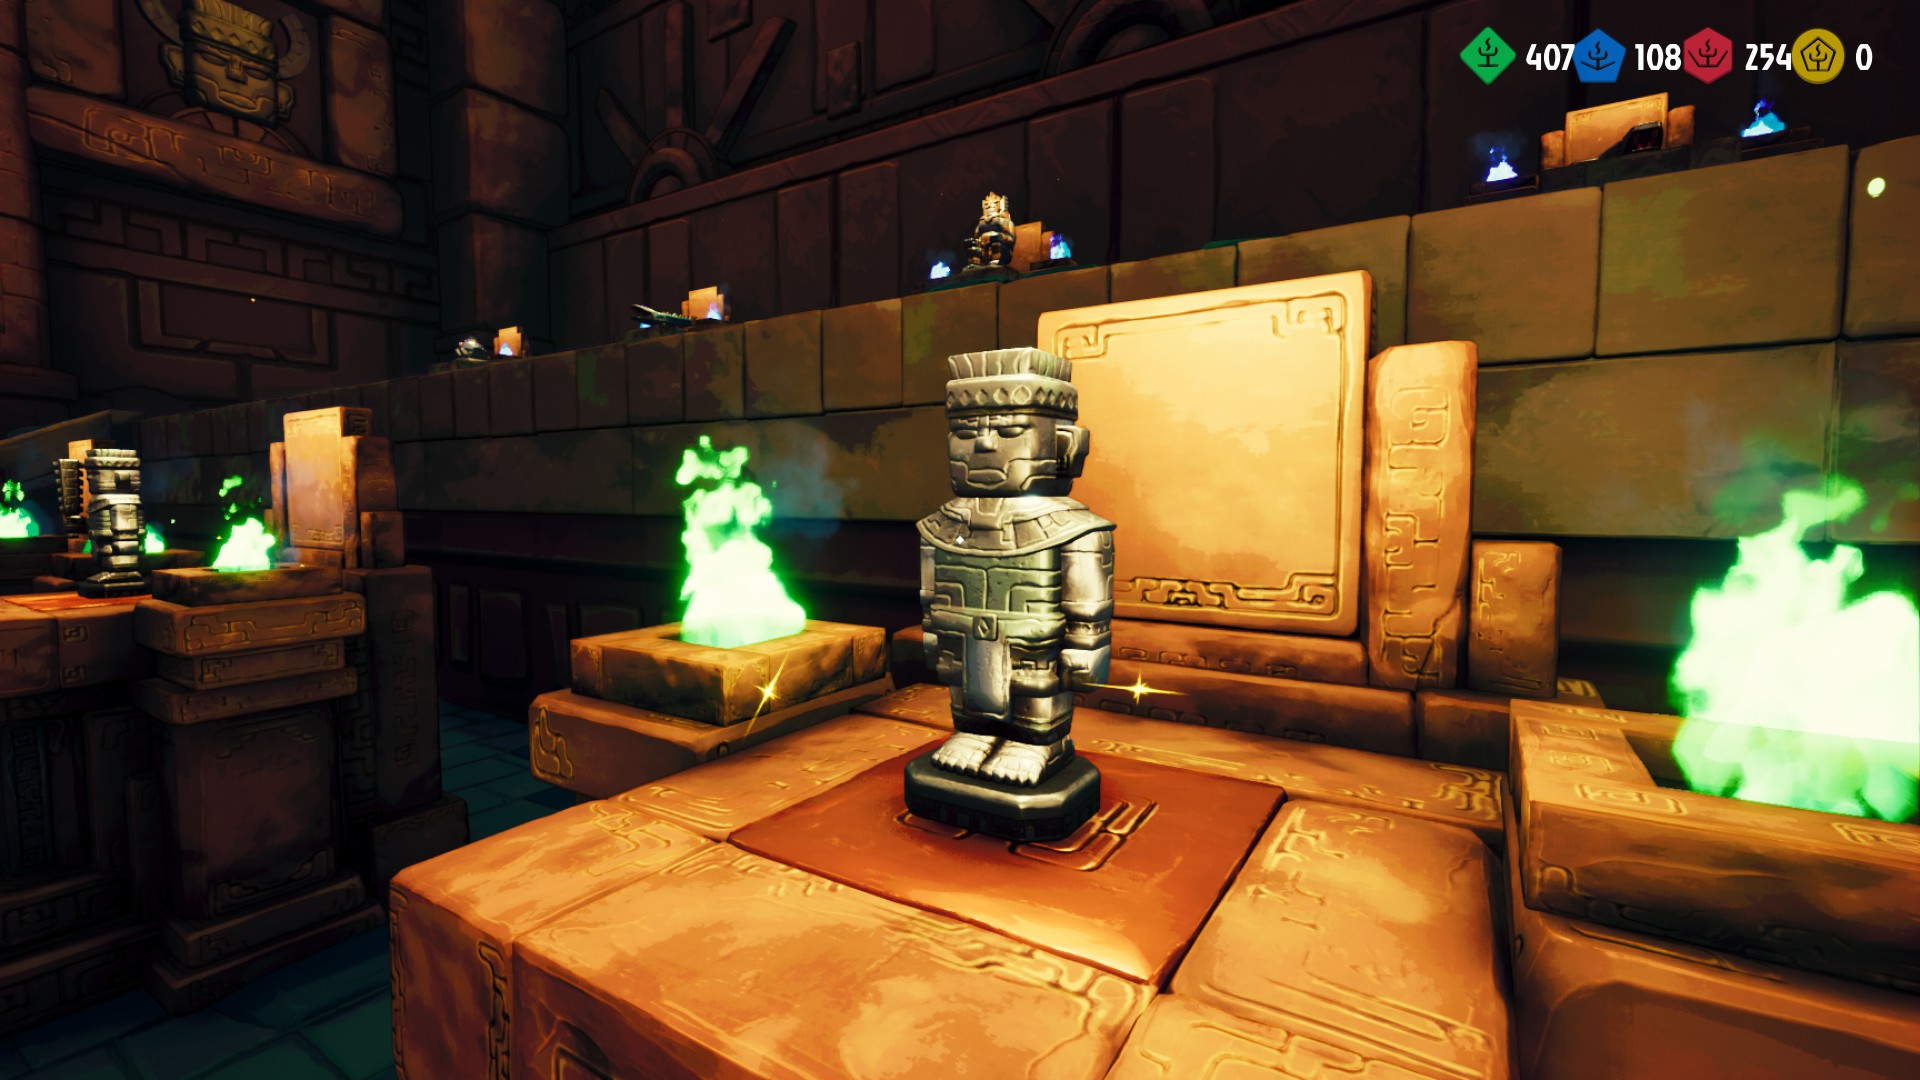 All Relics in Phantom Abyss image 23